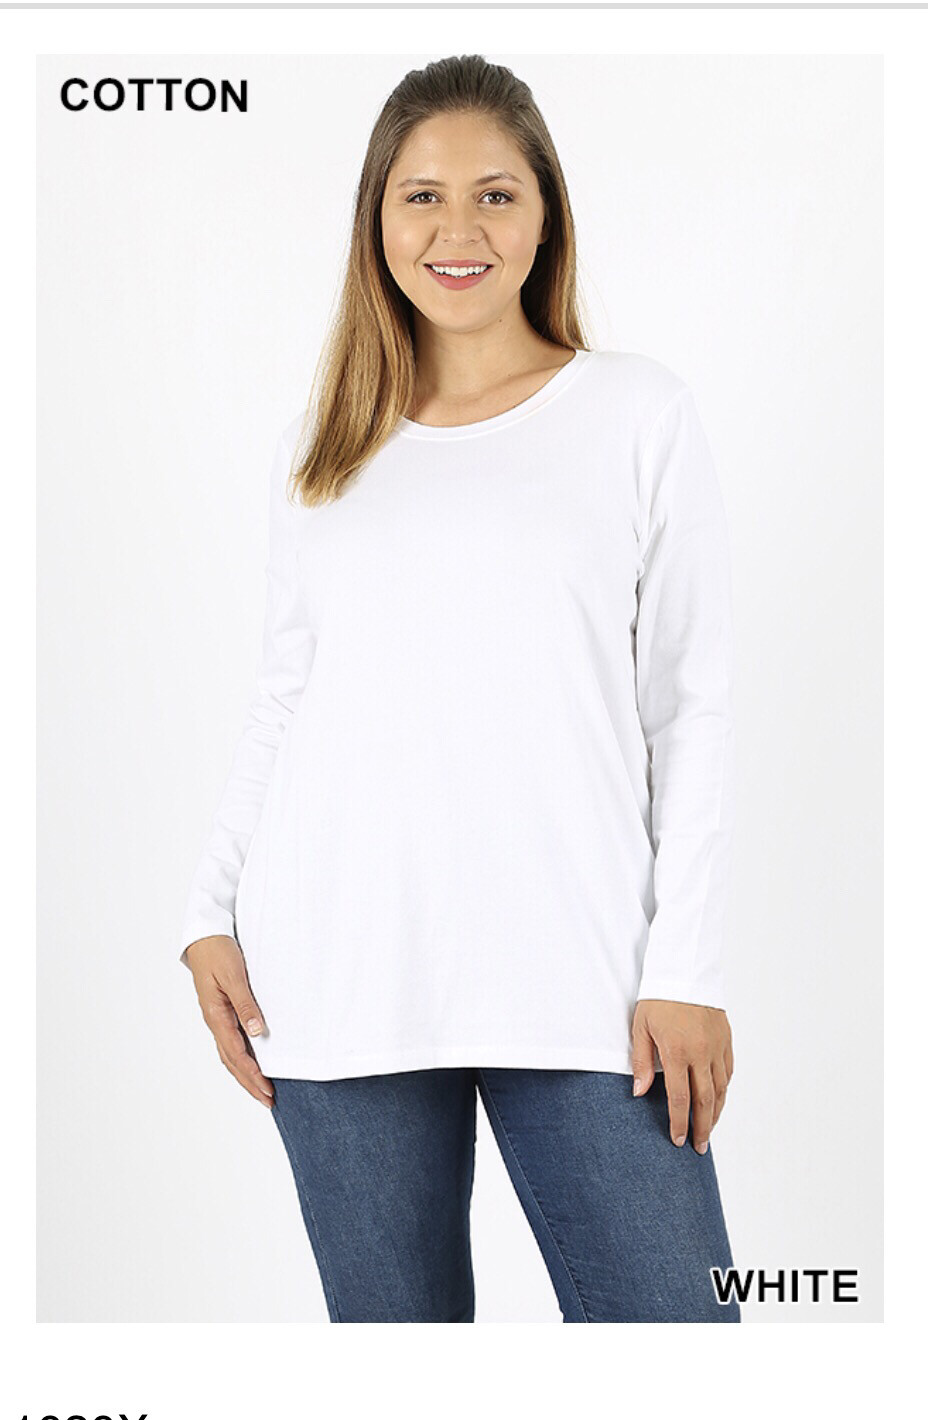 Plus Sized: Long Sleeved Cotton Shirt